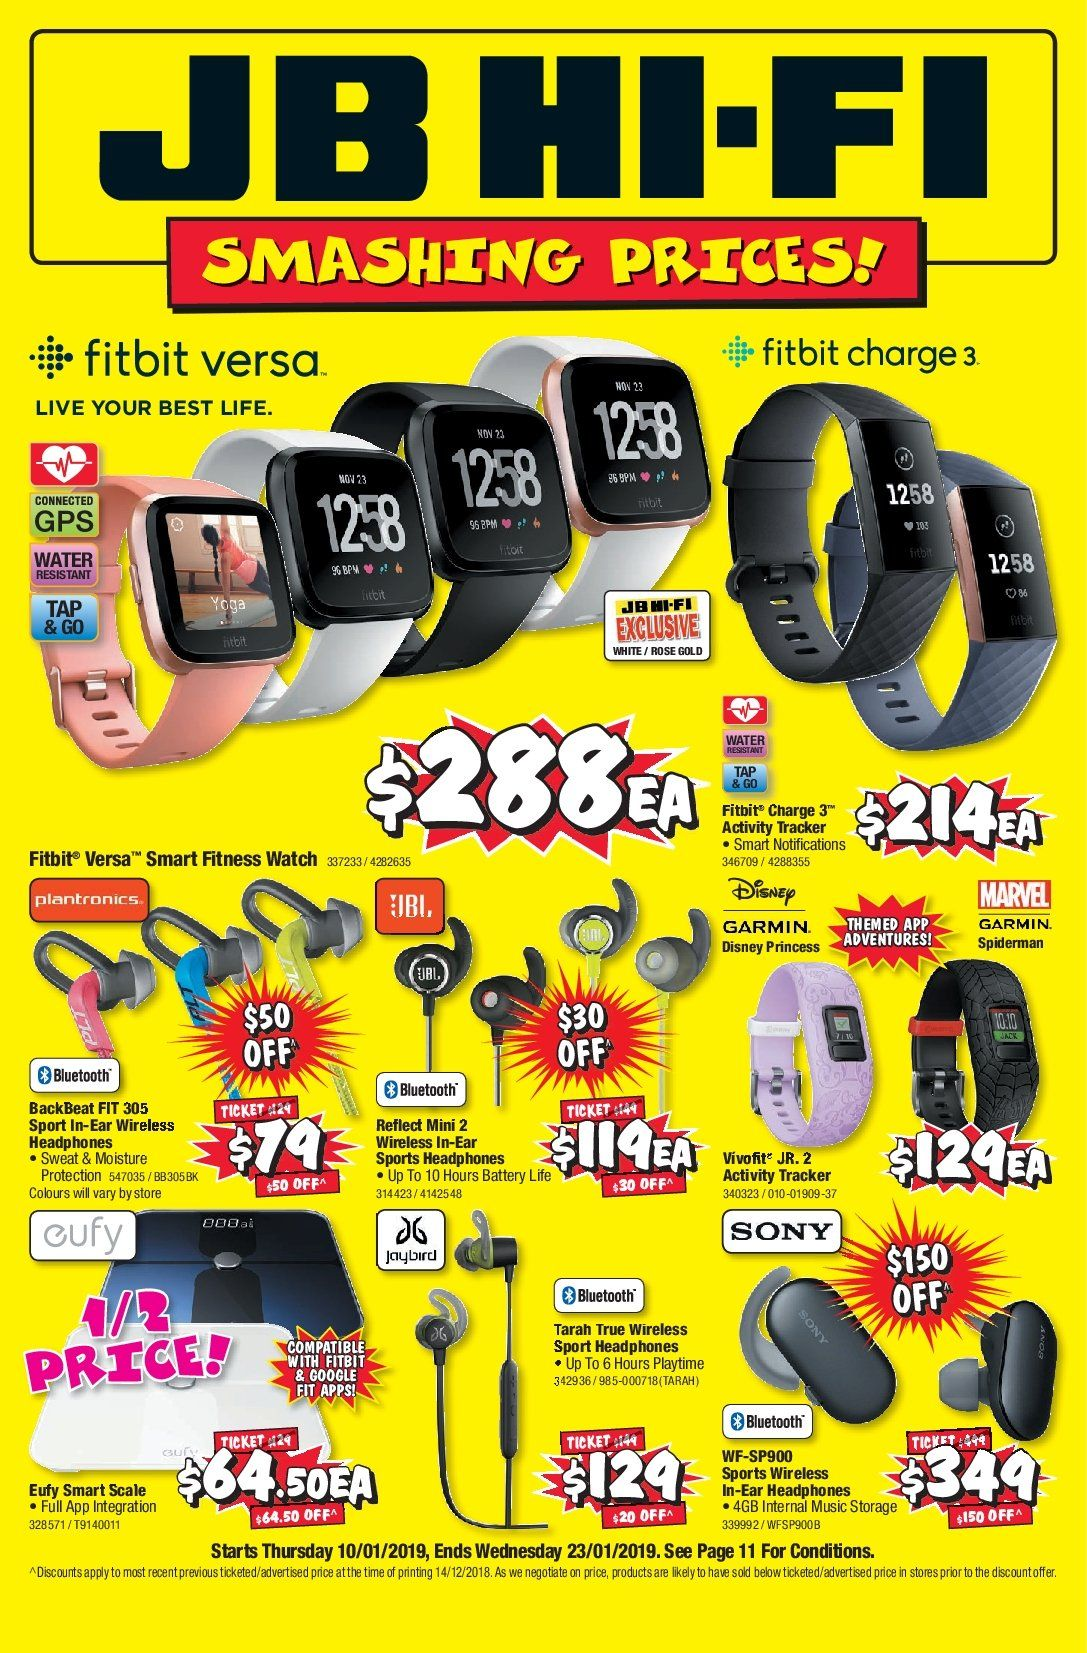 JB Hi-Fi Catalogue - 10.1.2019 - 23.1.2019 - Sales products - activity tracker, bluetooth, disney, fitbit, garmin, google, gps, moisture, sony, storage, watch, jaybird, plantronics, water resistant, headphones, wireless, scale. Page 1.